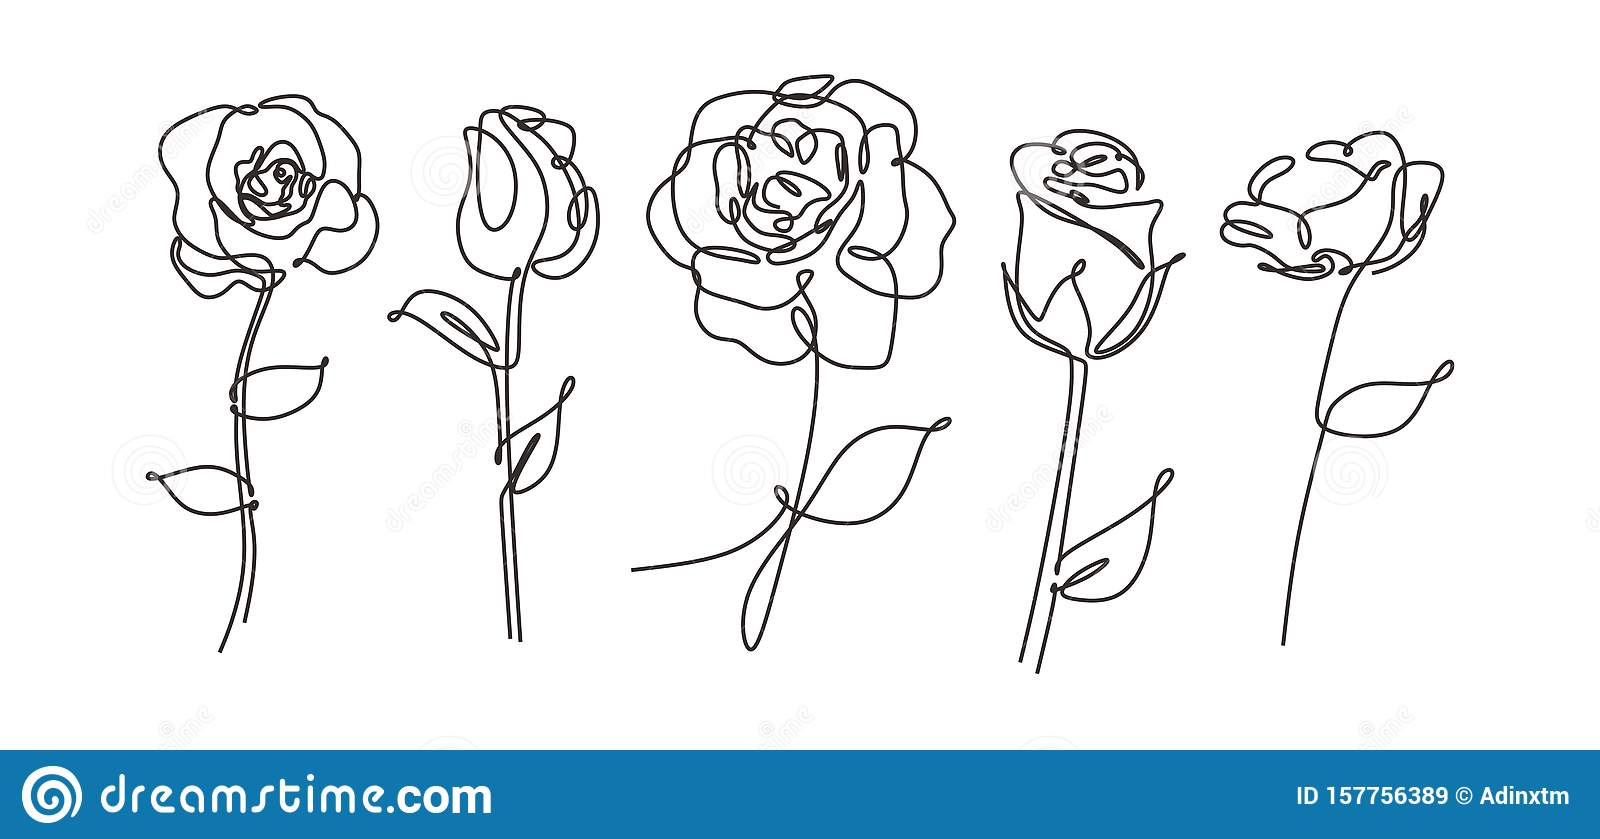 vector single one line drawn set of flowers. Rose flower drawing outline illustration isolated on white background. Botanical